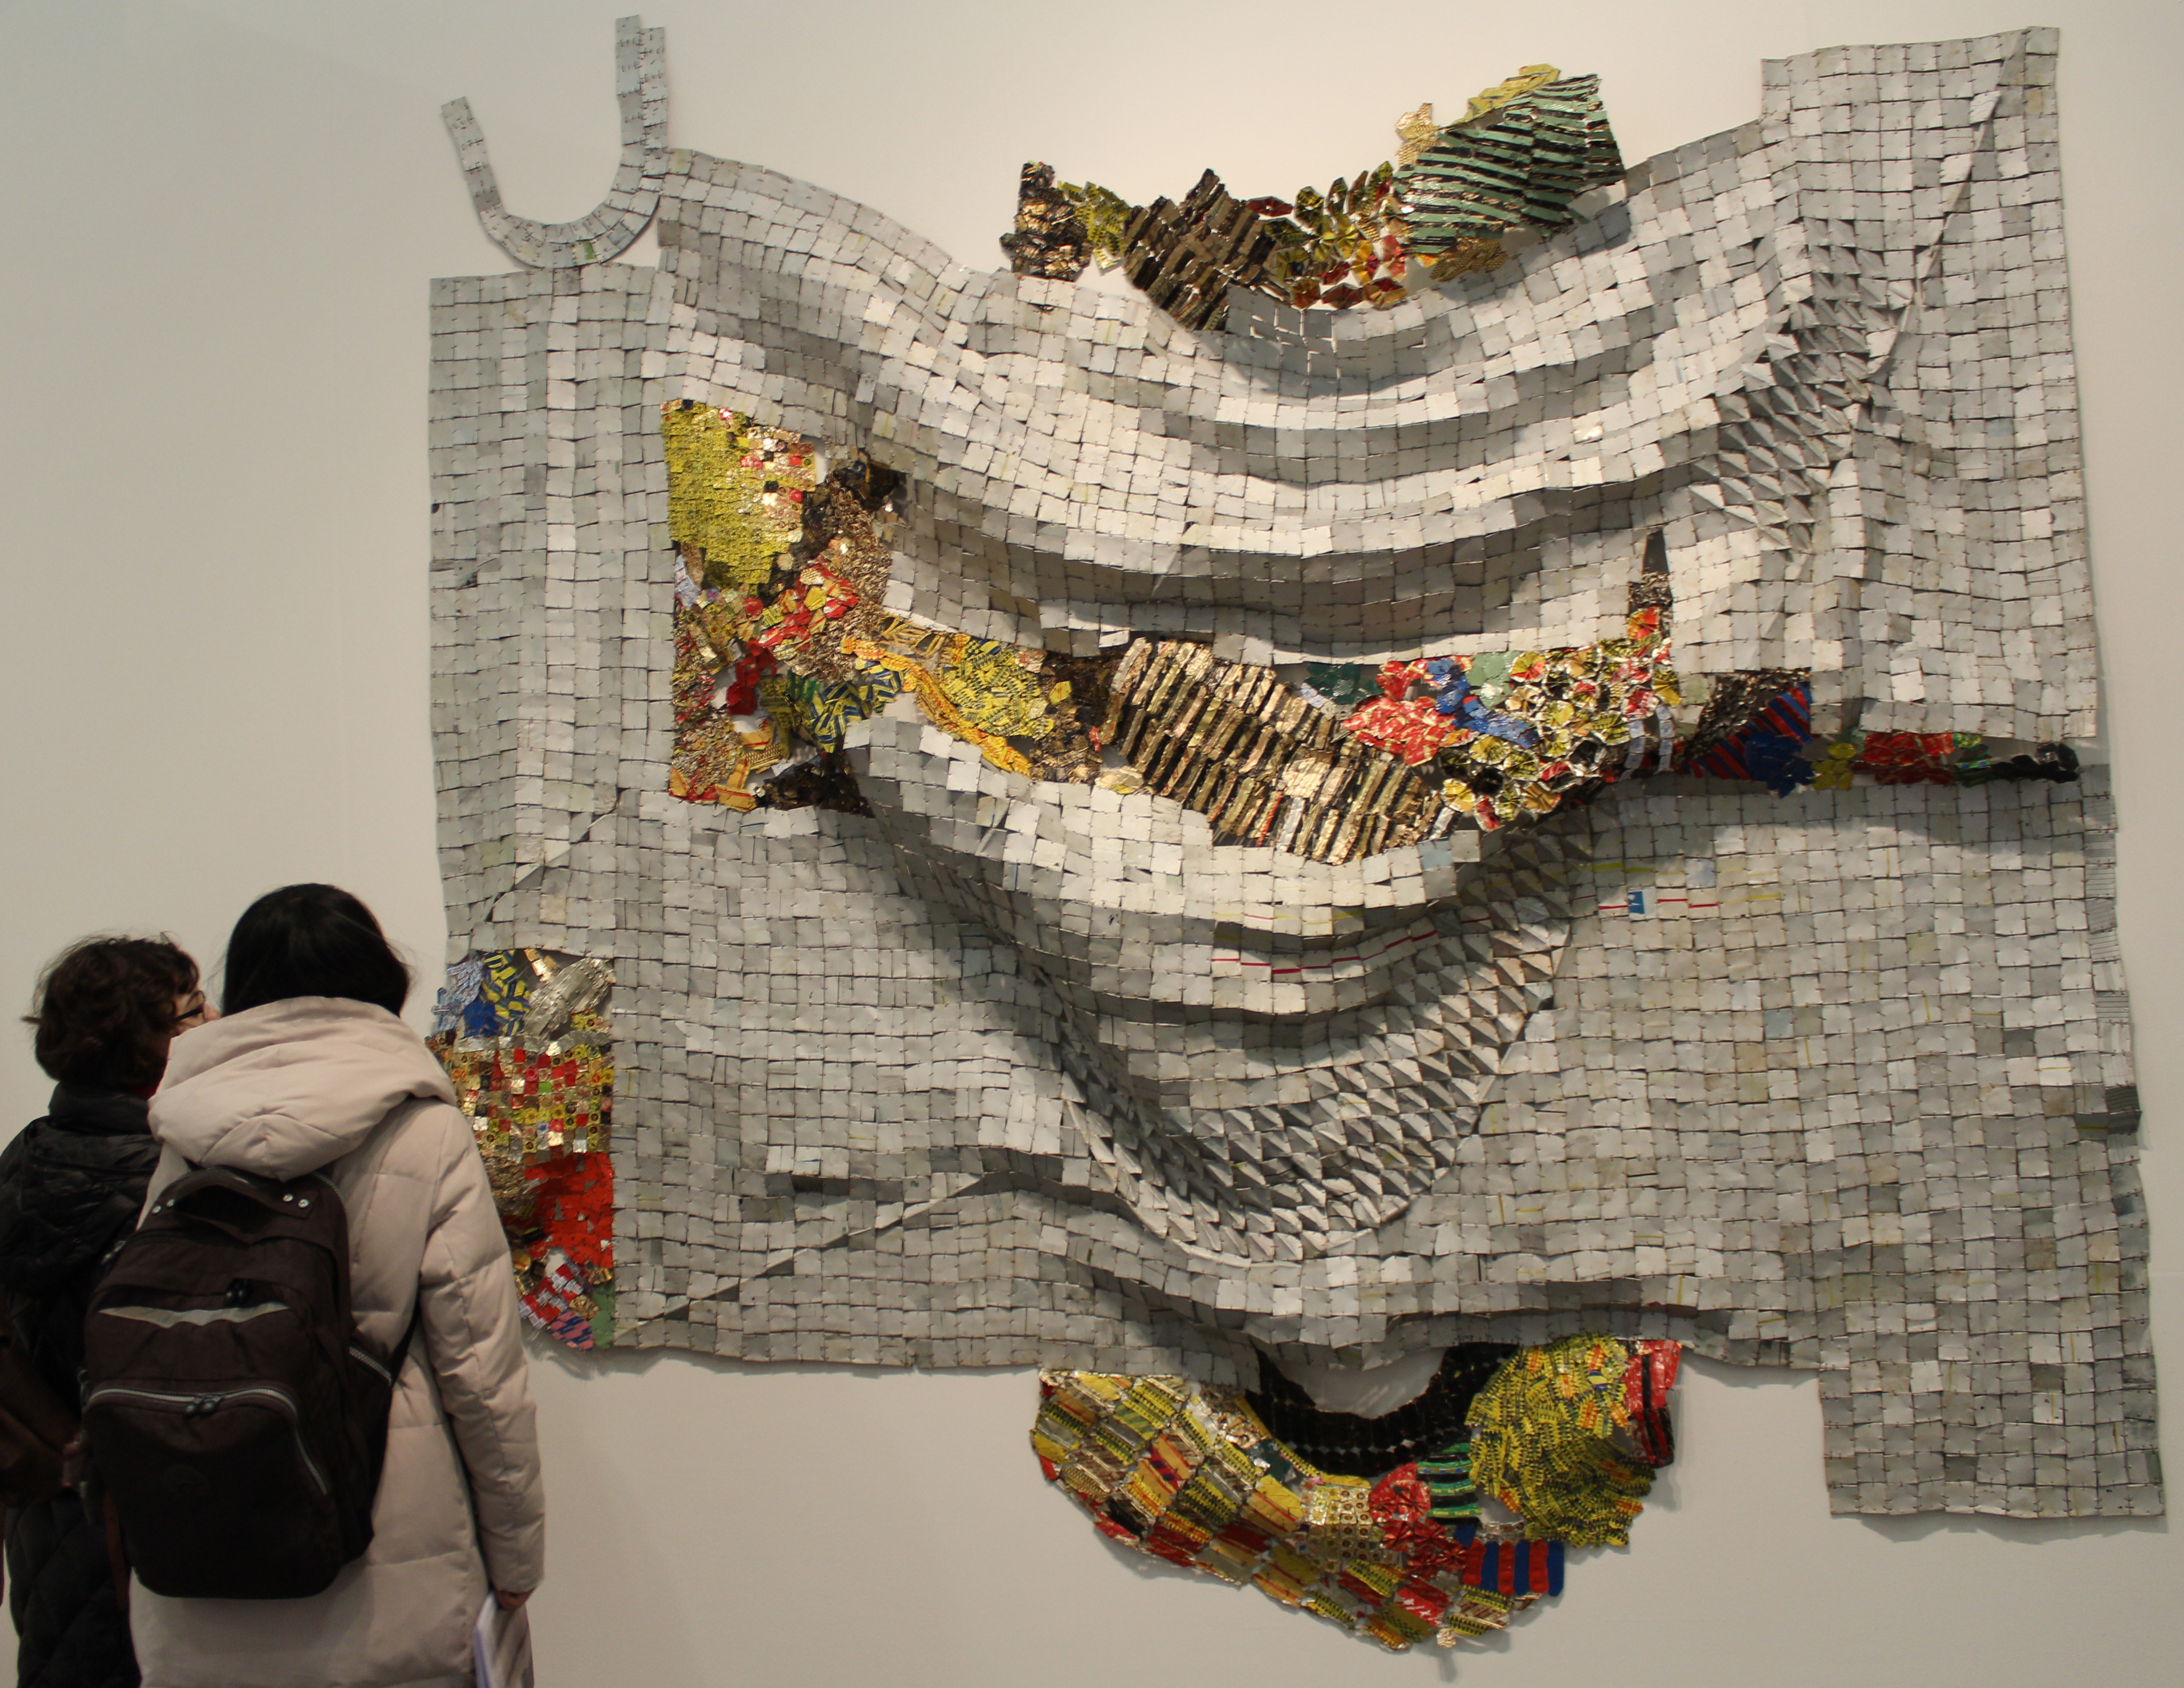 Pauline Shongov (B.F.A., left) and Yuxi Xiao (B.F.A., right) looking at a piece by artist El Anatsui.